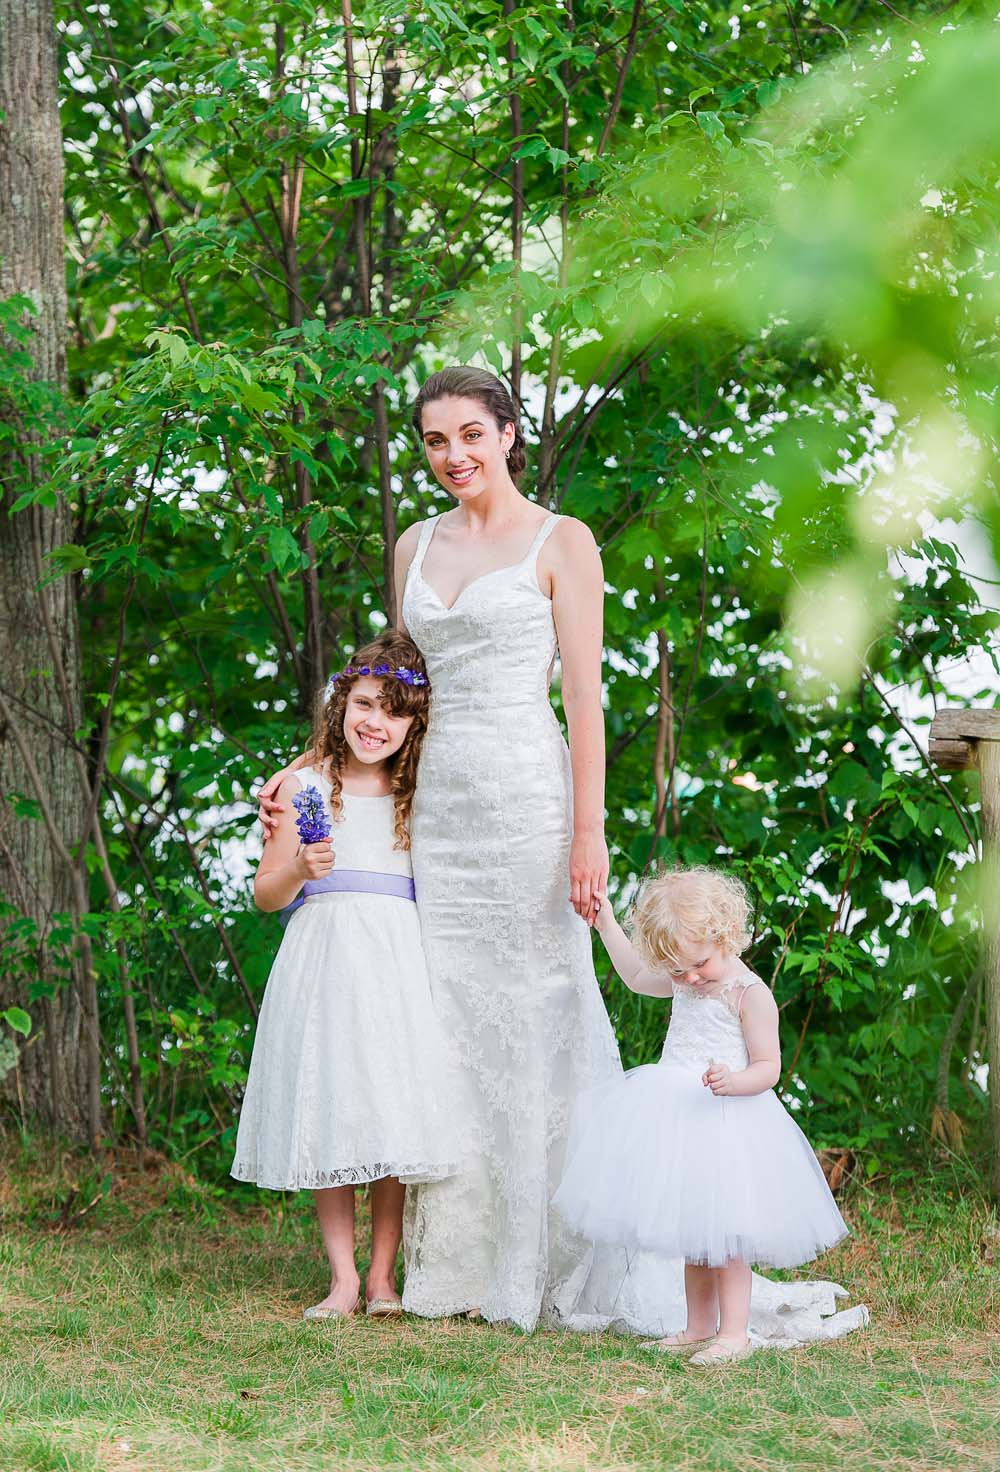 An Ultra Violet-Inspired Styled Shoot In Quebec - Bride and flower girls